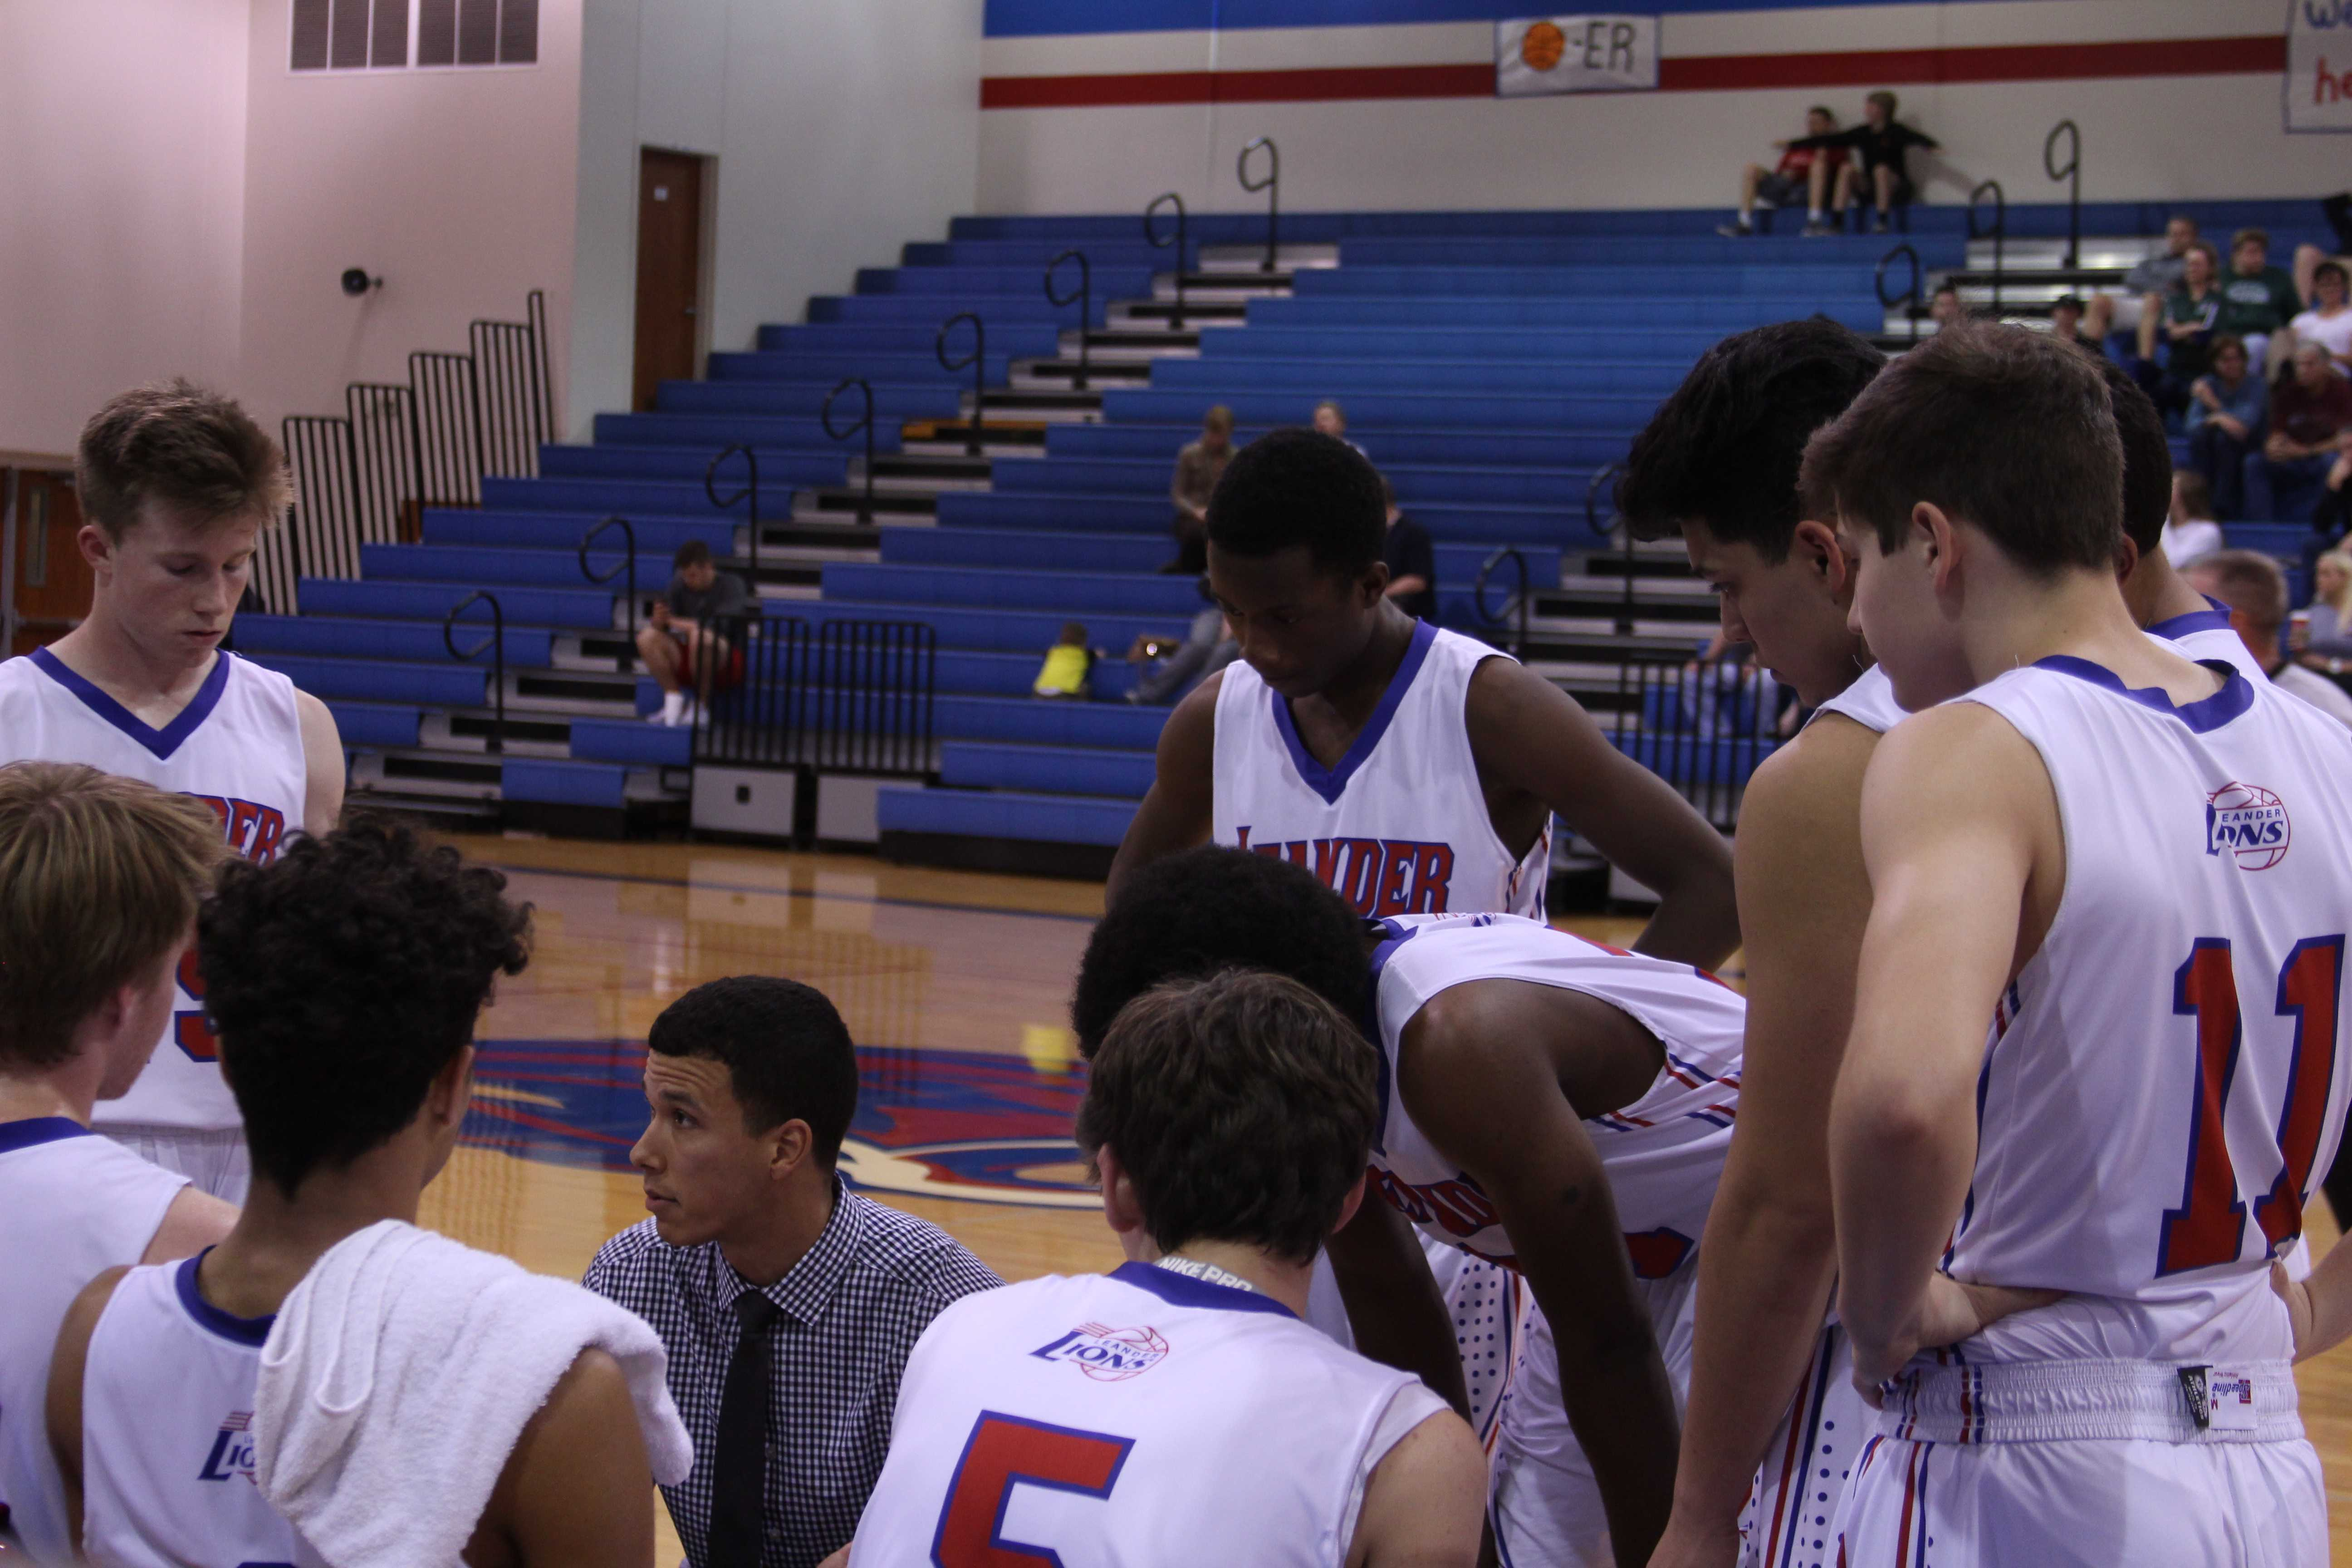 JV boys during a time out. This was the second game they've lost this season.